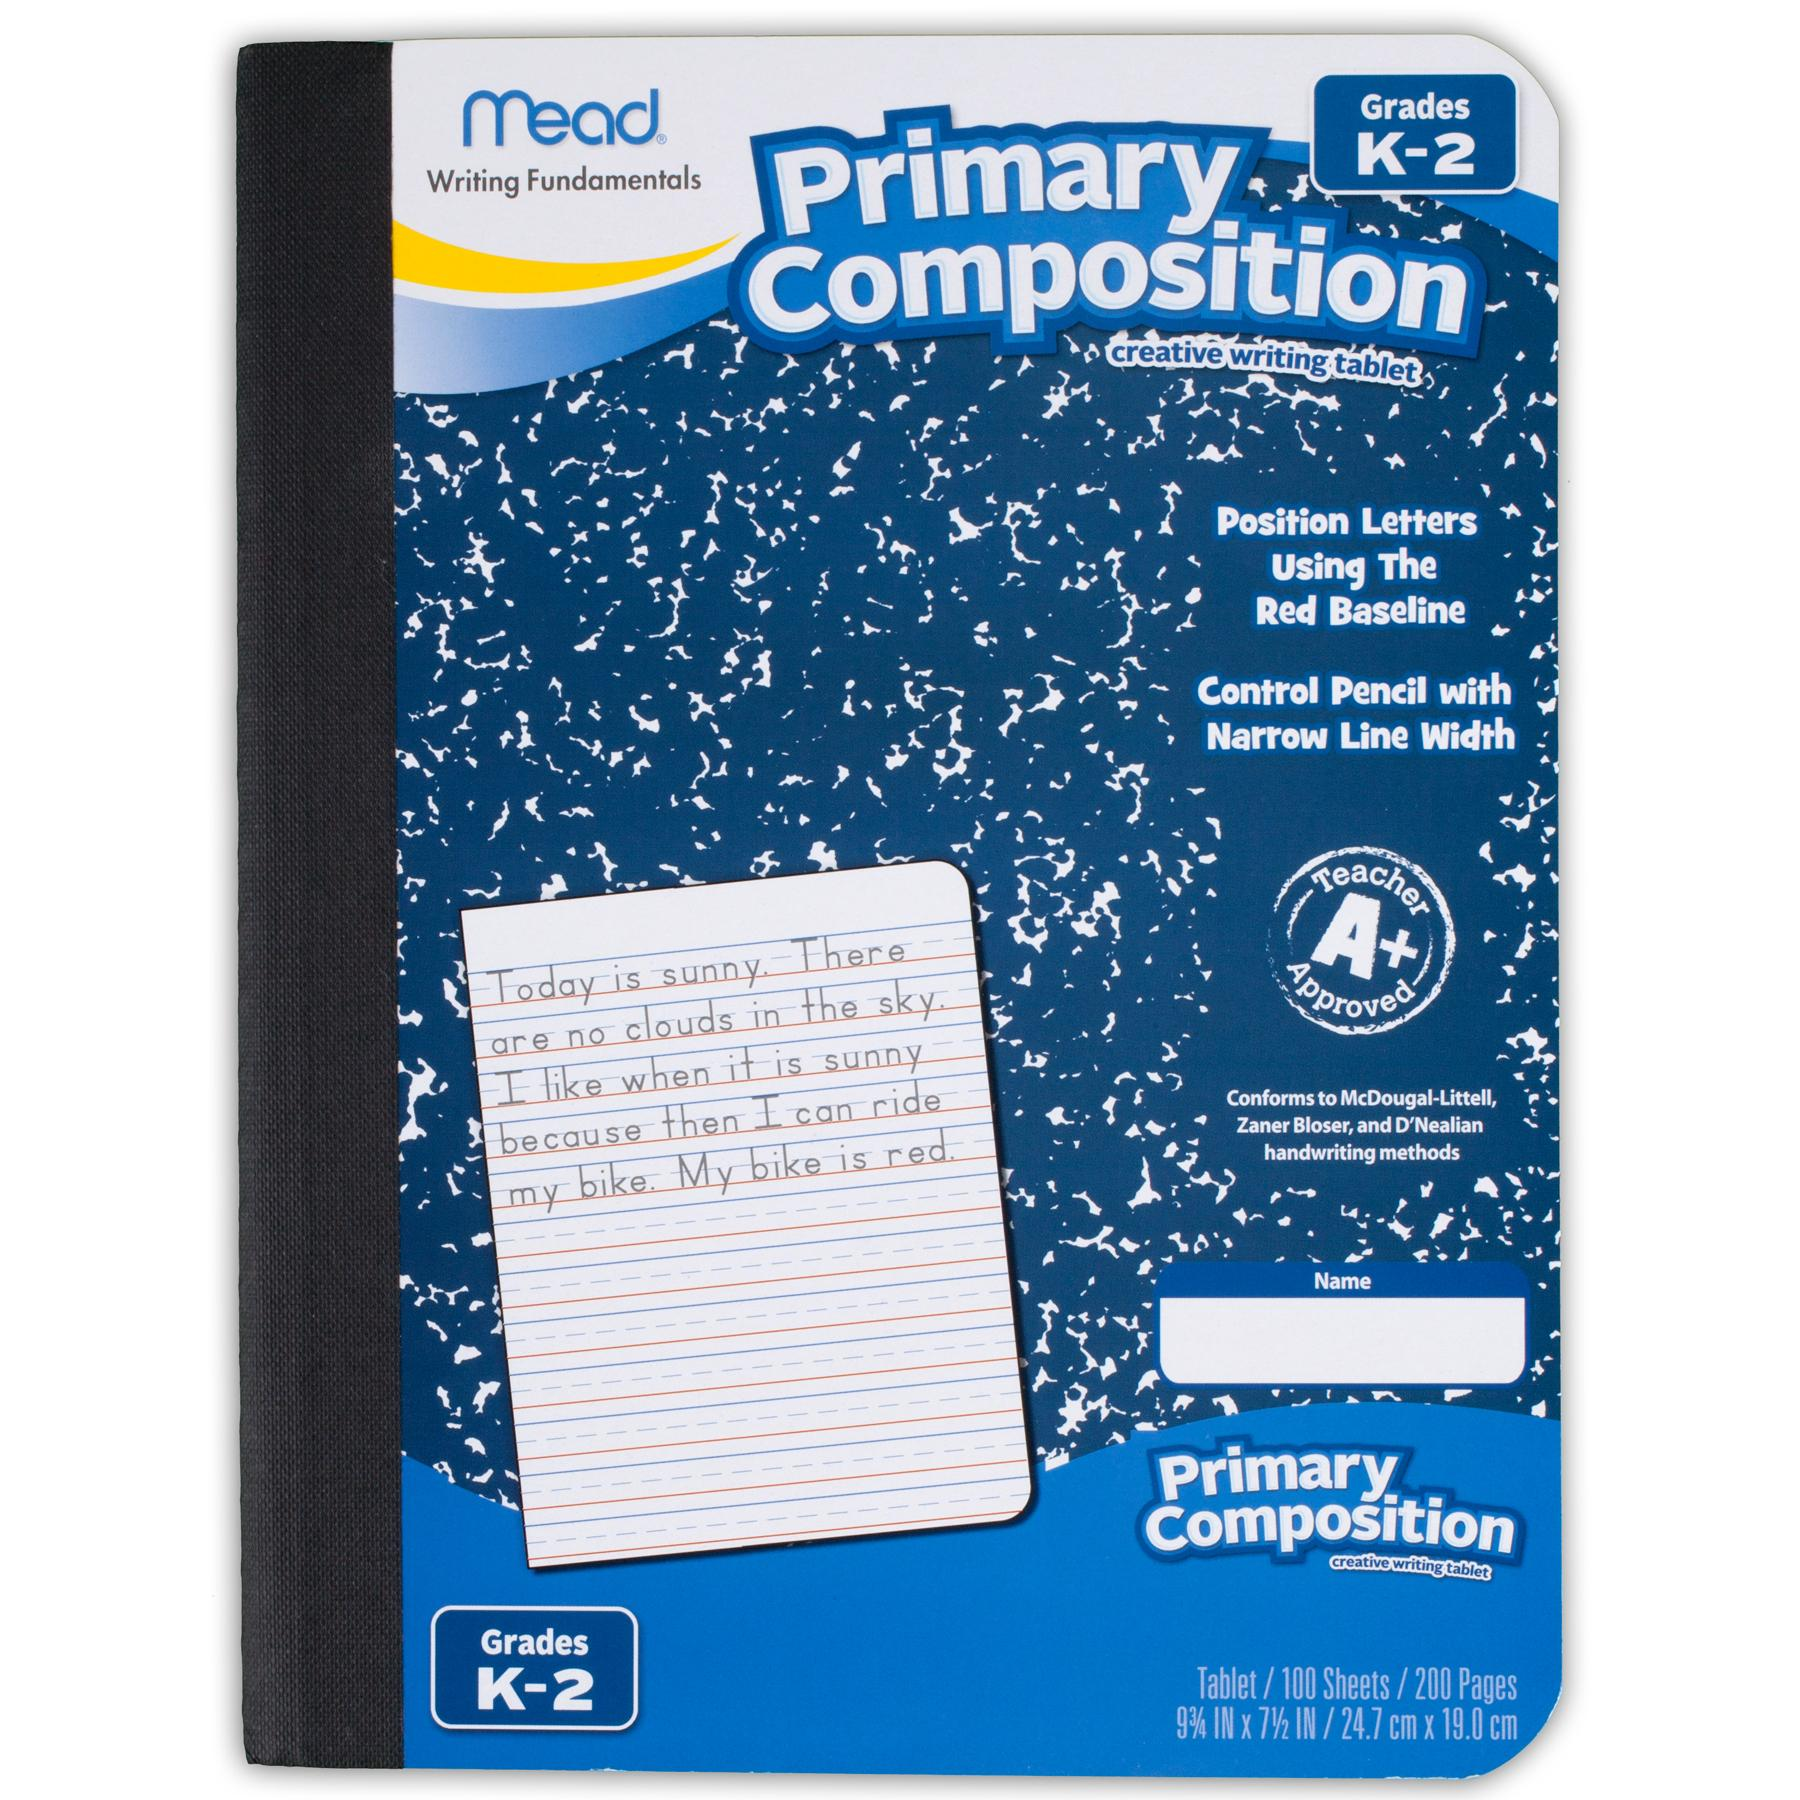 Mead primary composition early creative writing stage 3